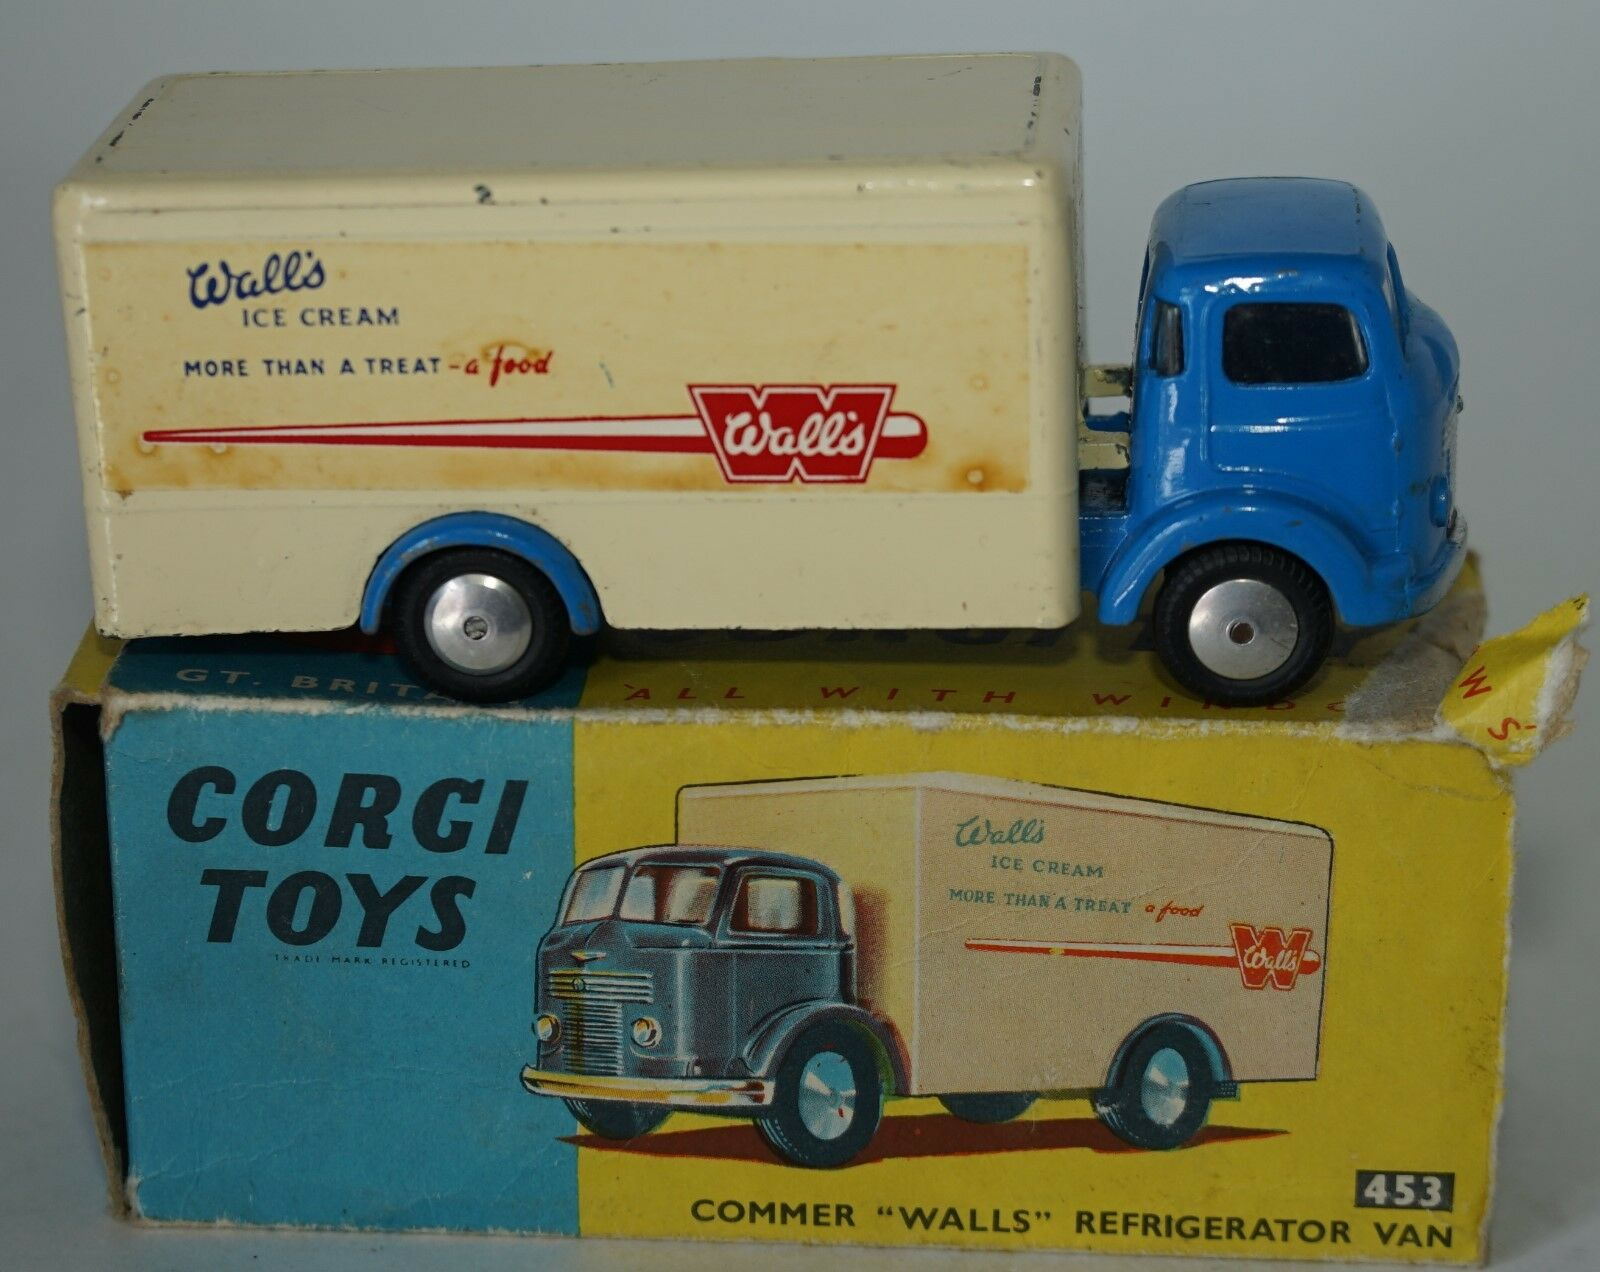 CORGI 453 COMMER REFRIDGERATED VAN WALLS ICE CREAM